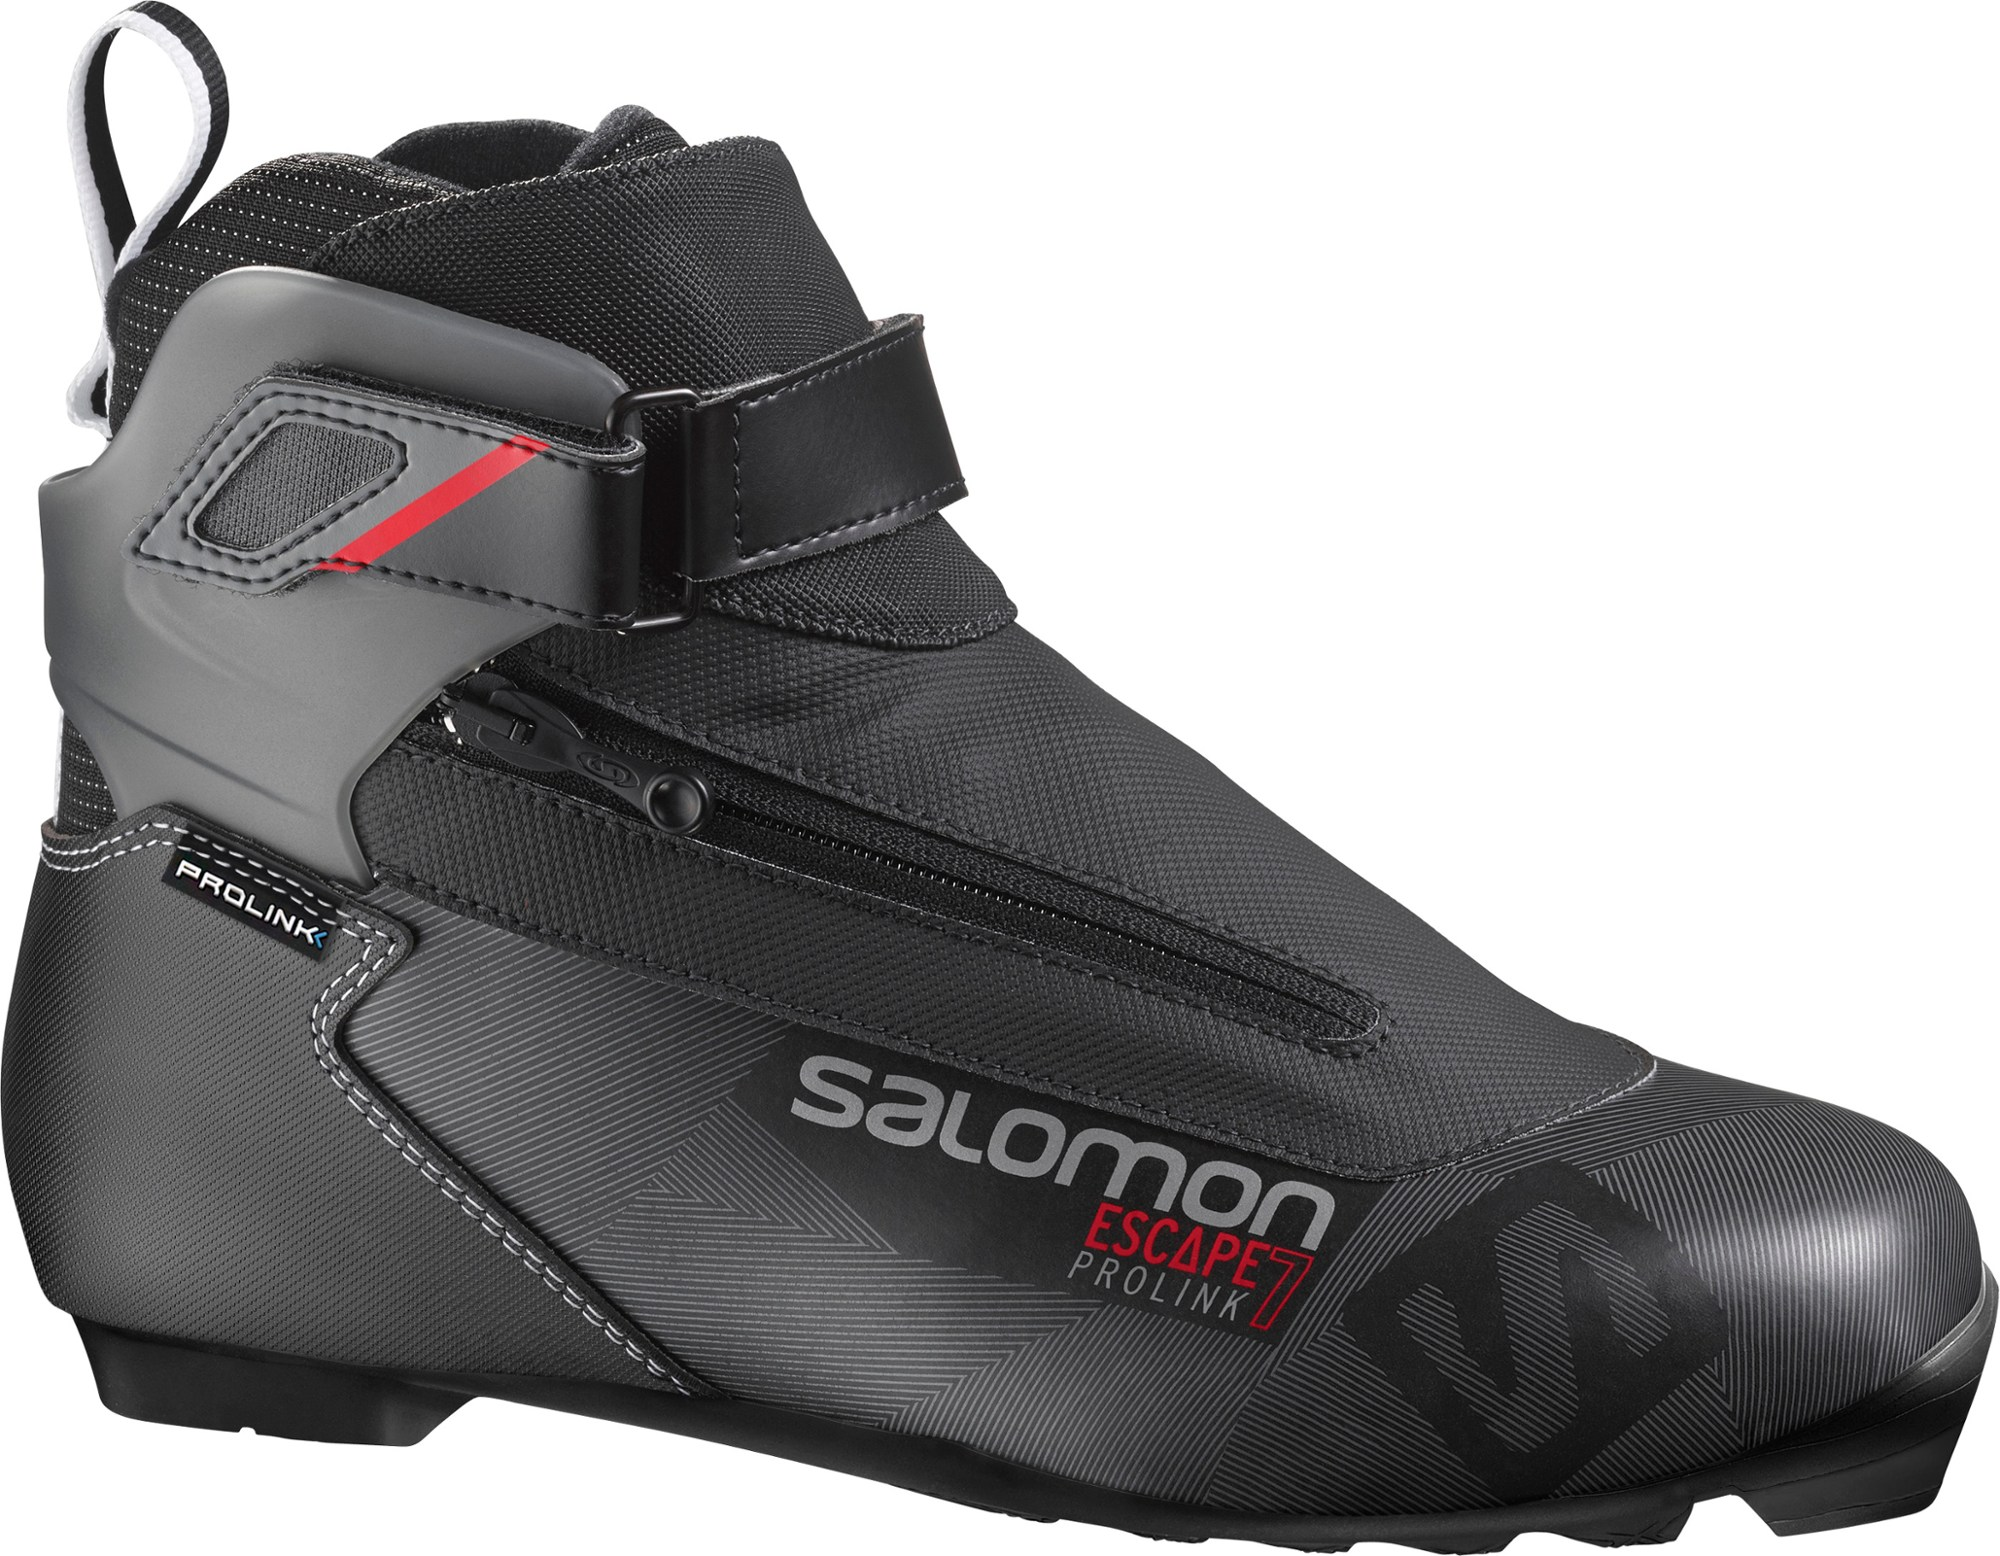 Salomon Escape 7 Prolink Cross-Country Ski Boots - Men's